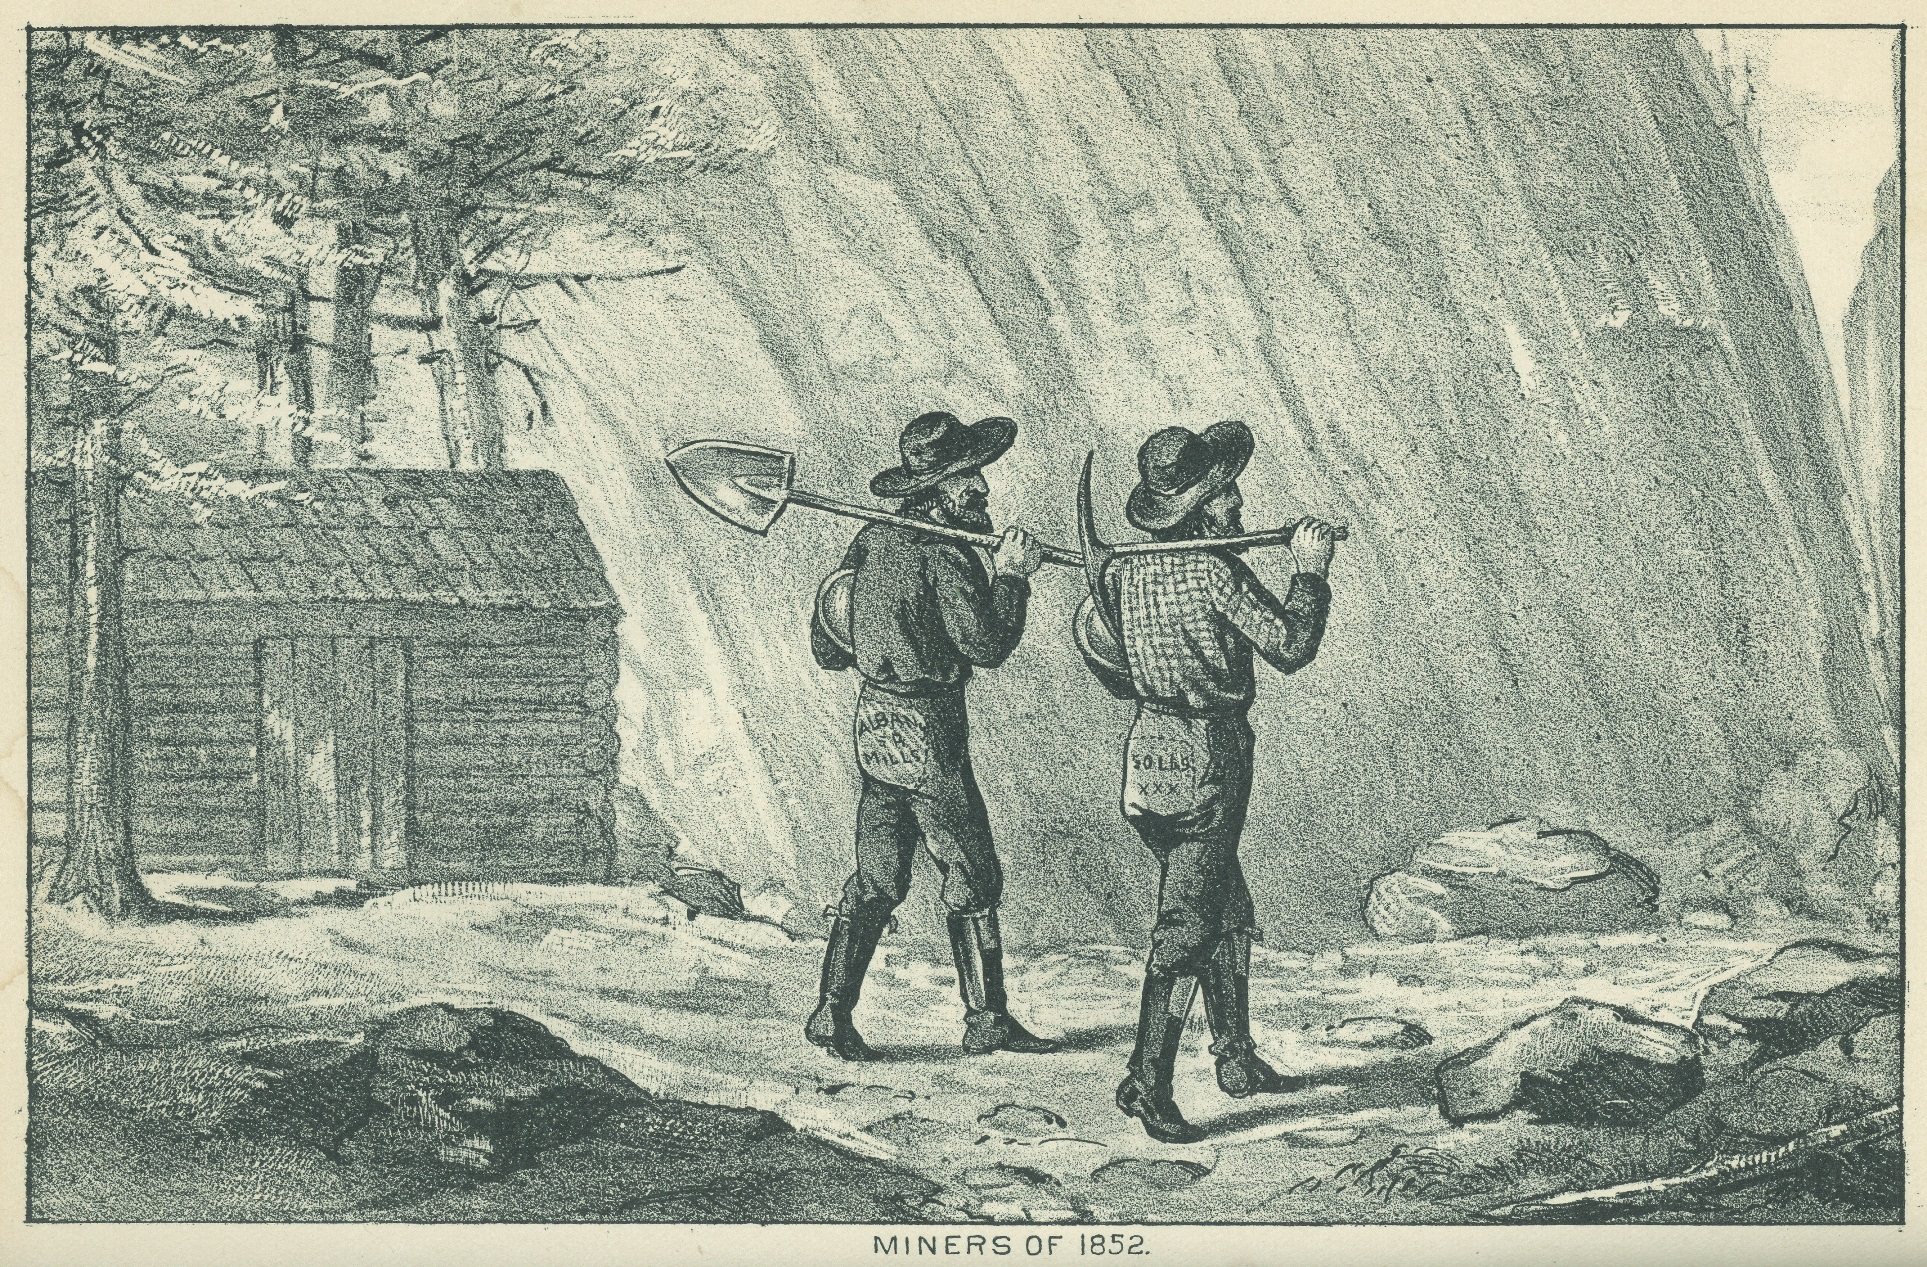 Miners, Reminiscences of an Old Timer, 1889